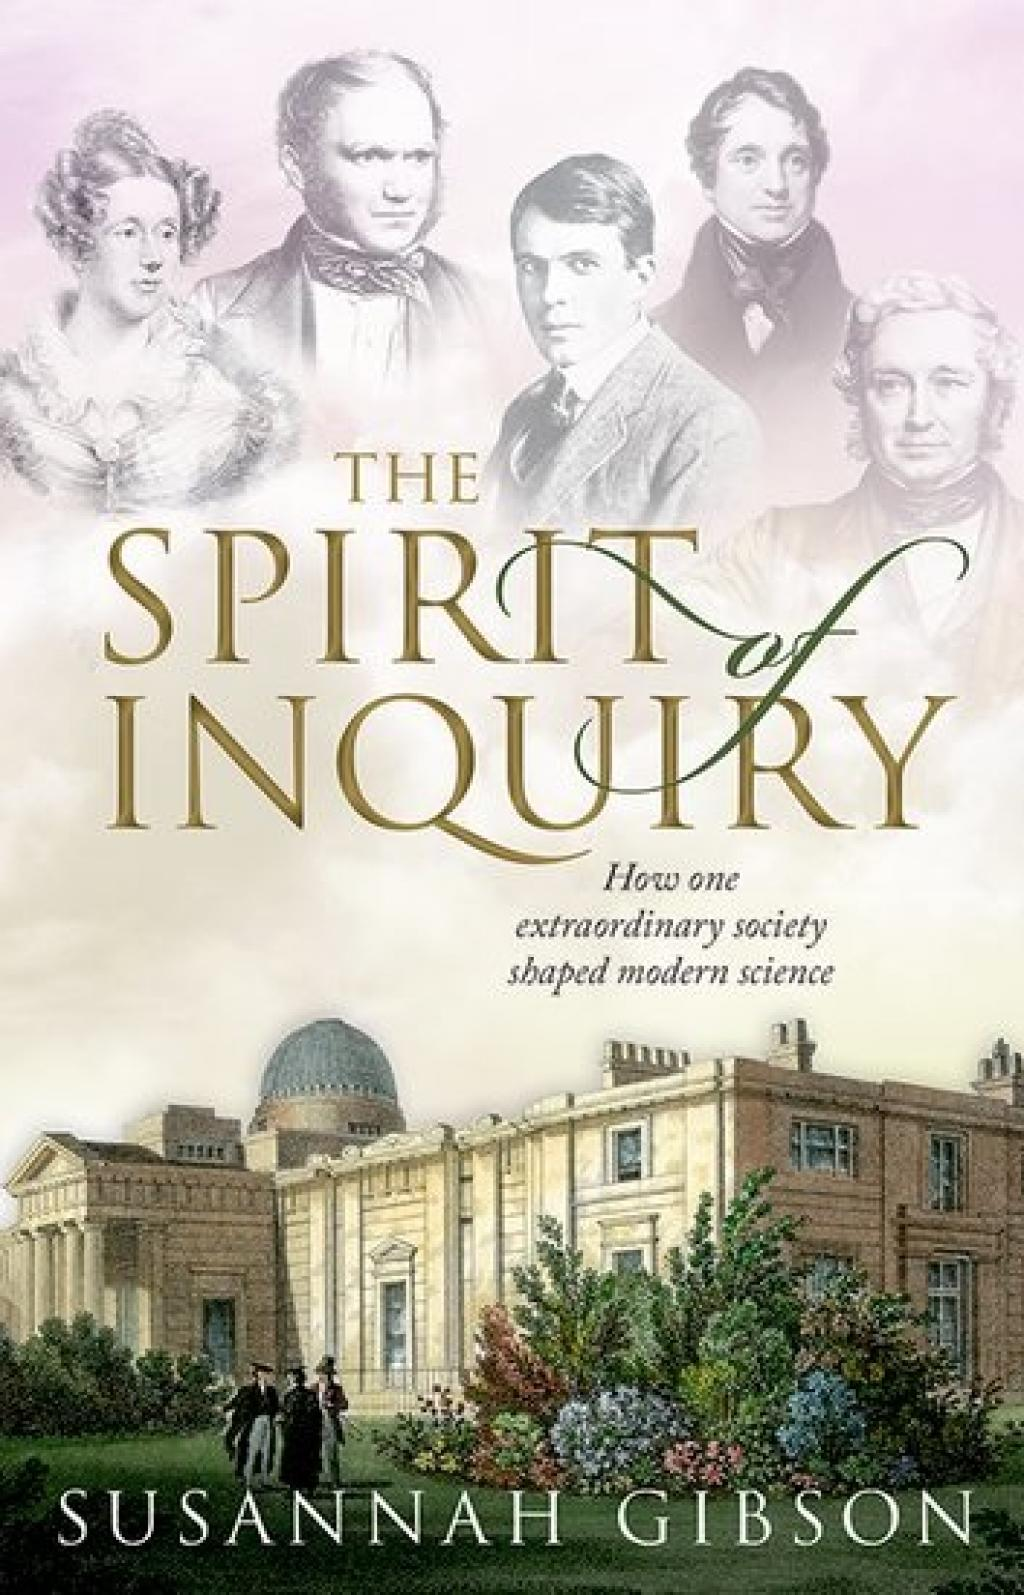 The cover of 'The Spirit of Inquiry' by Susannah Gibson. Photo: Oxford University Press